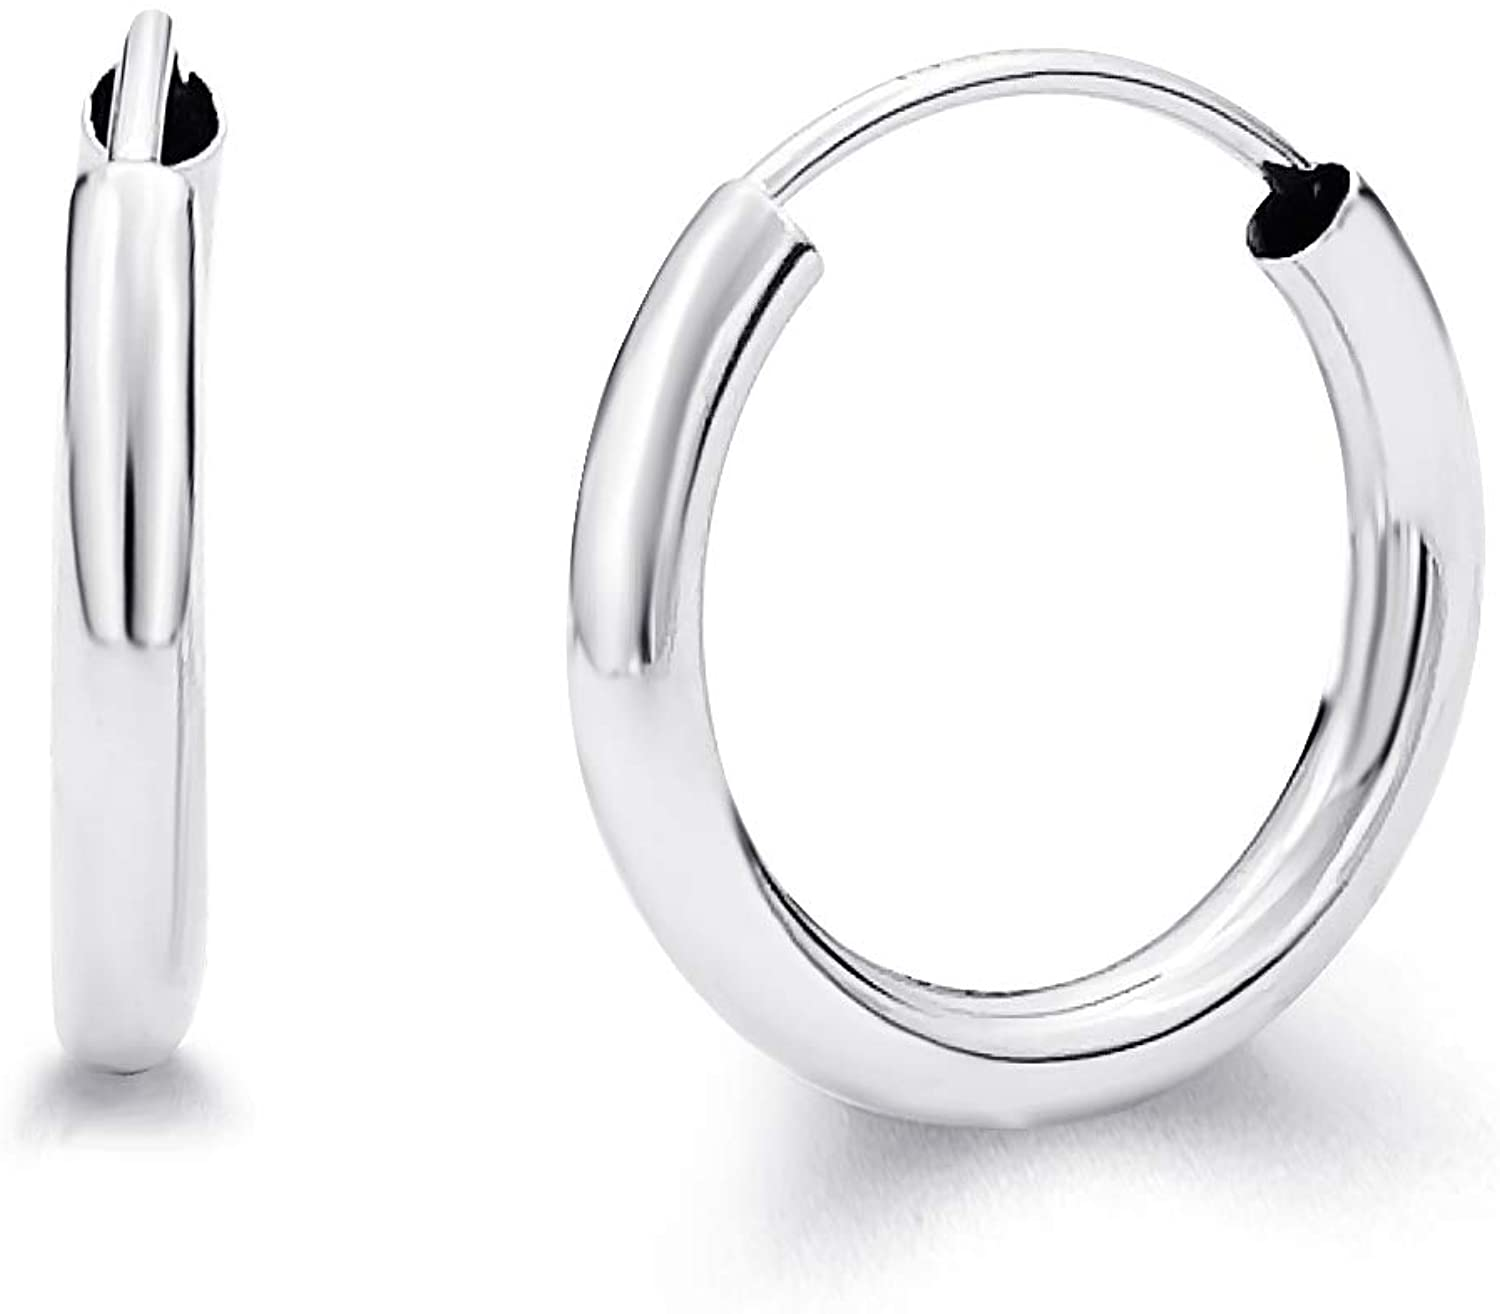 14k White Gold 2mm Thickness Endless Hoop Earrings - 9 Different Size Available